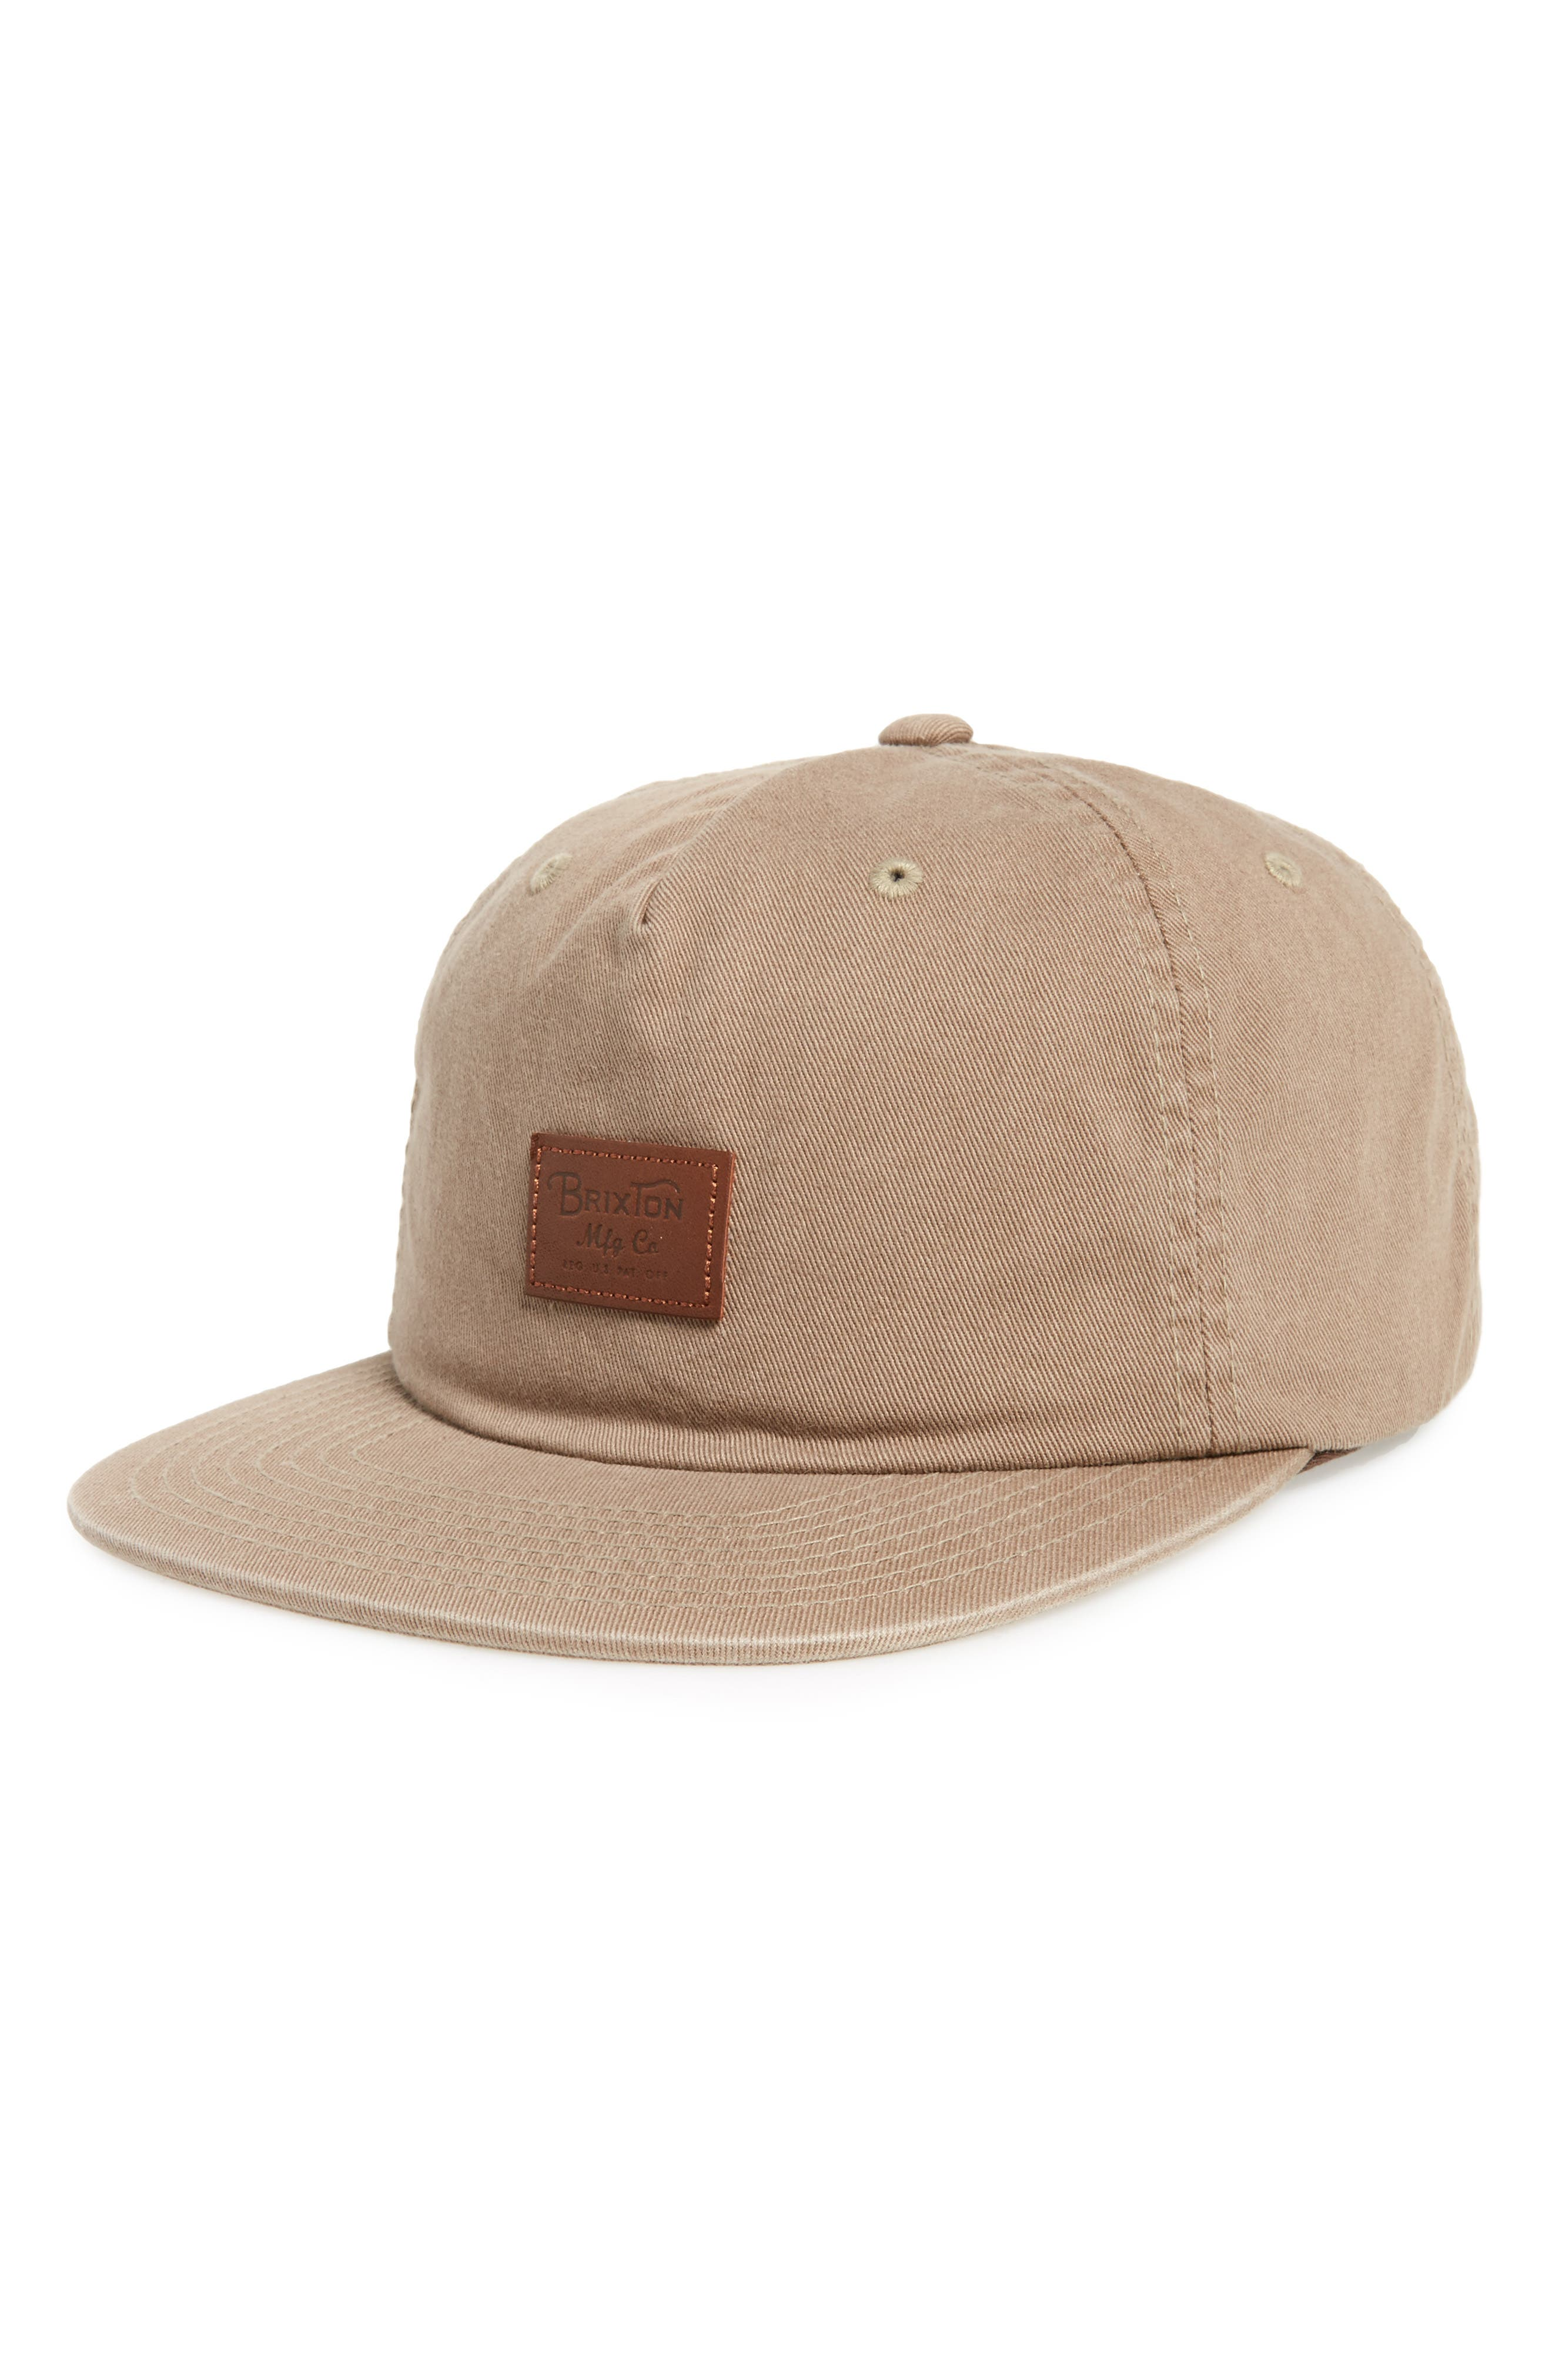 Grade II Snapback Baseball Cap,                         Main,                         color, Washed Mocha